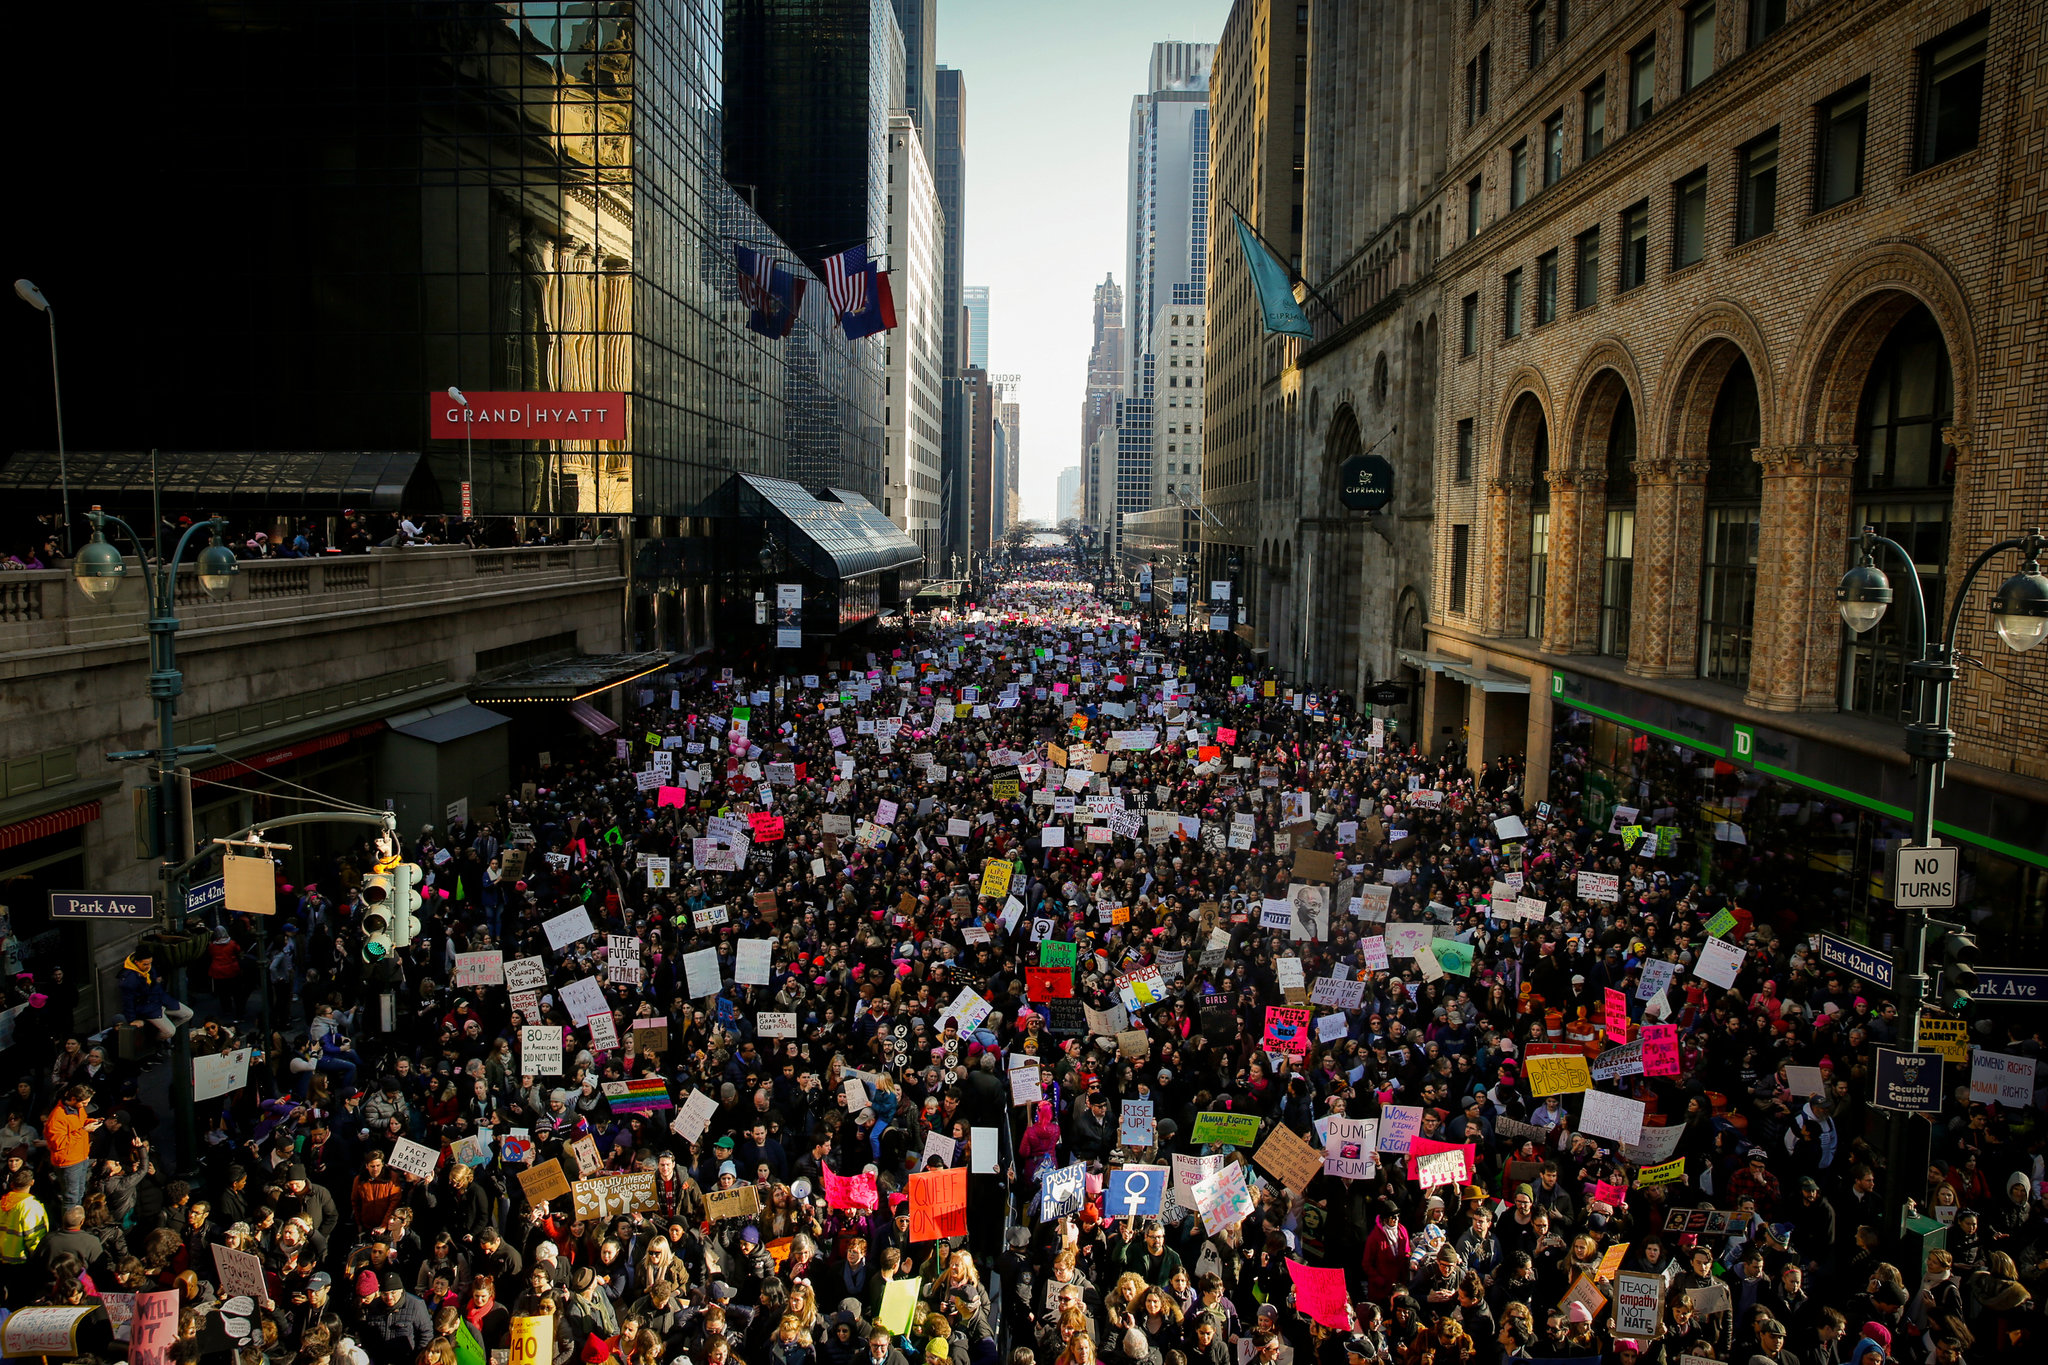 Protesters on 42nd Street in front of Grand Central Terminal during the Women's March in New York. (Nicole Craine/The New York Times)